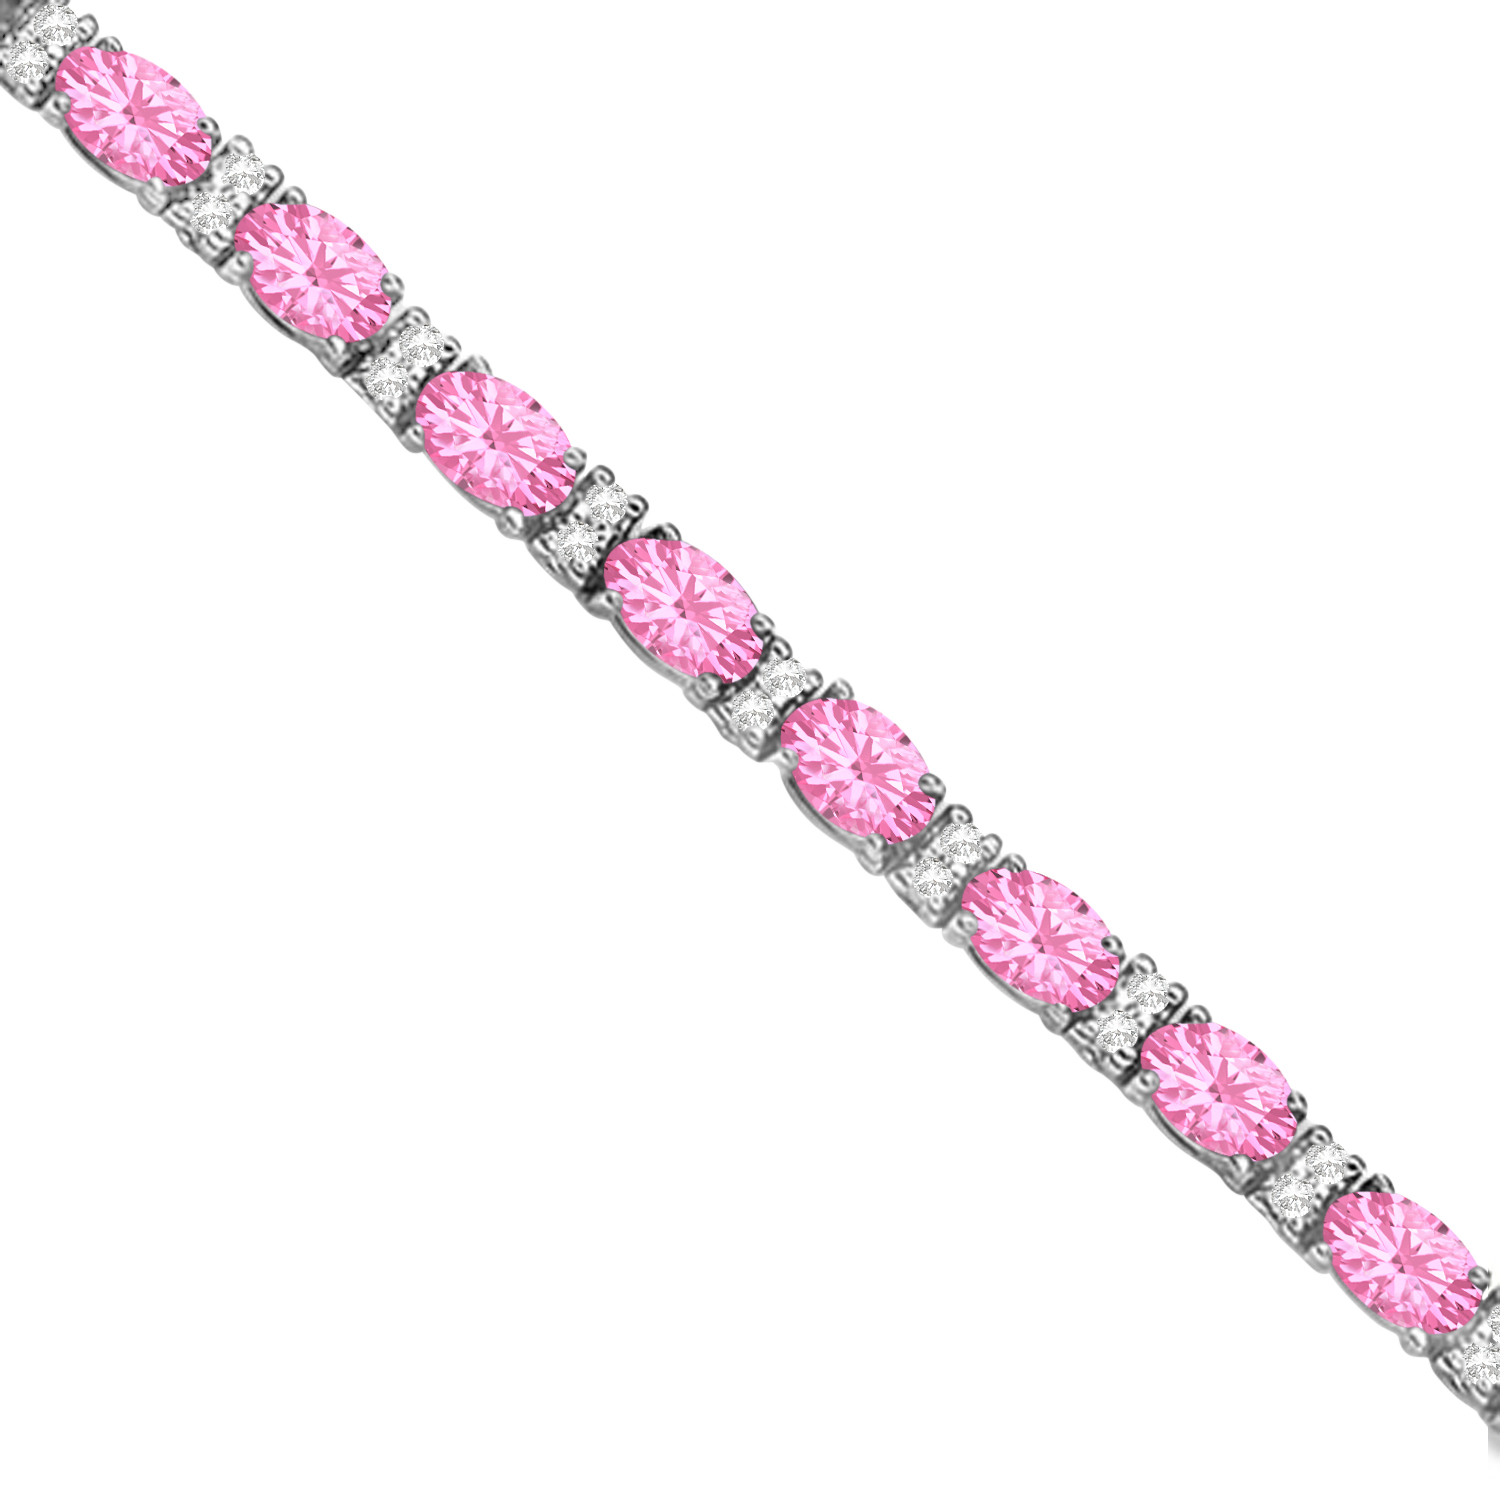 Diamond Amp Oval Cut Pink Tourmaline Tennis Bracelet 14k W